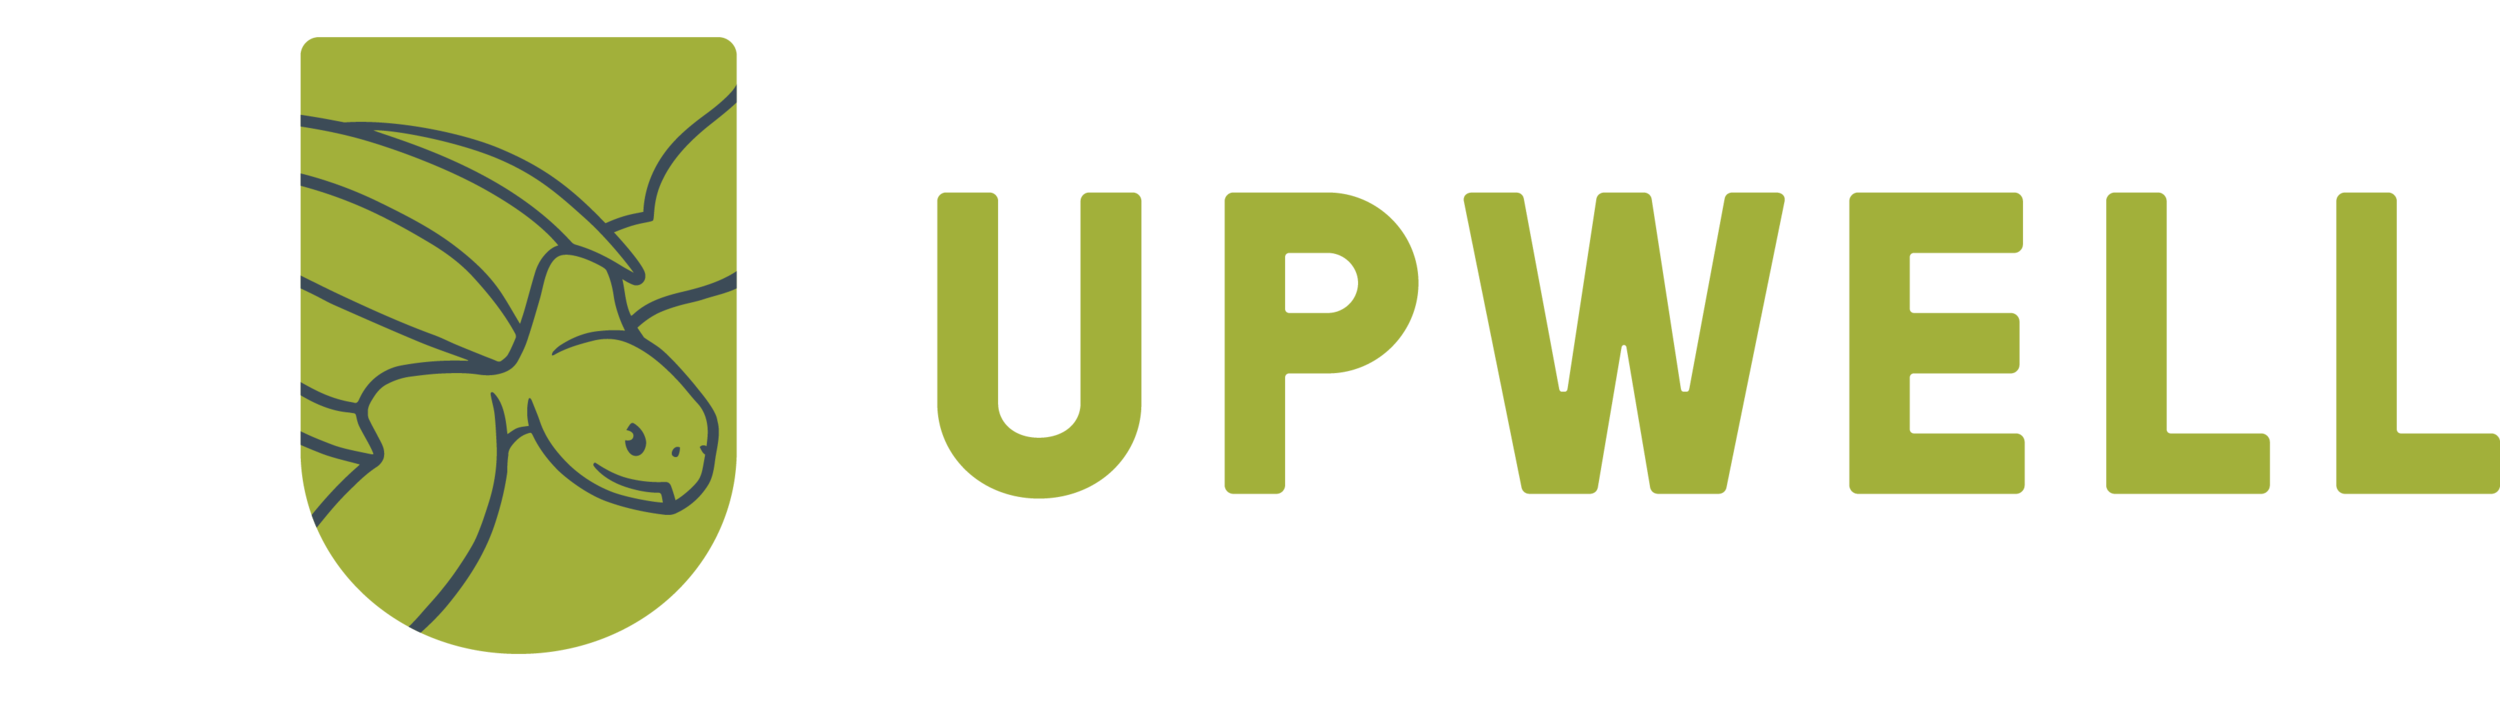 upwell_logo-hor_fc_RGB (1).png